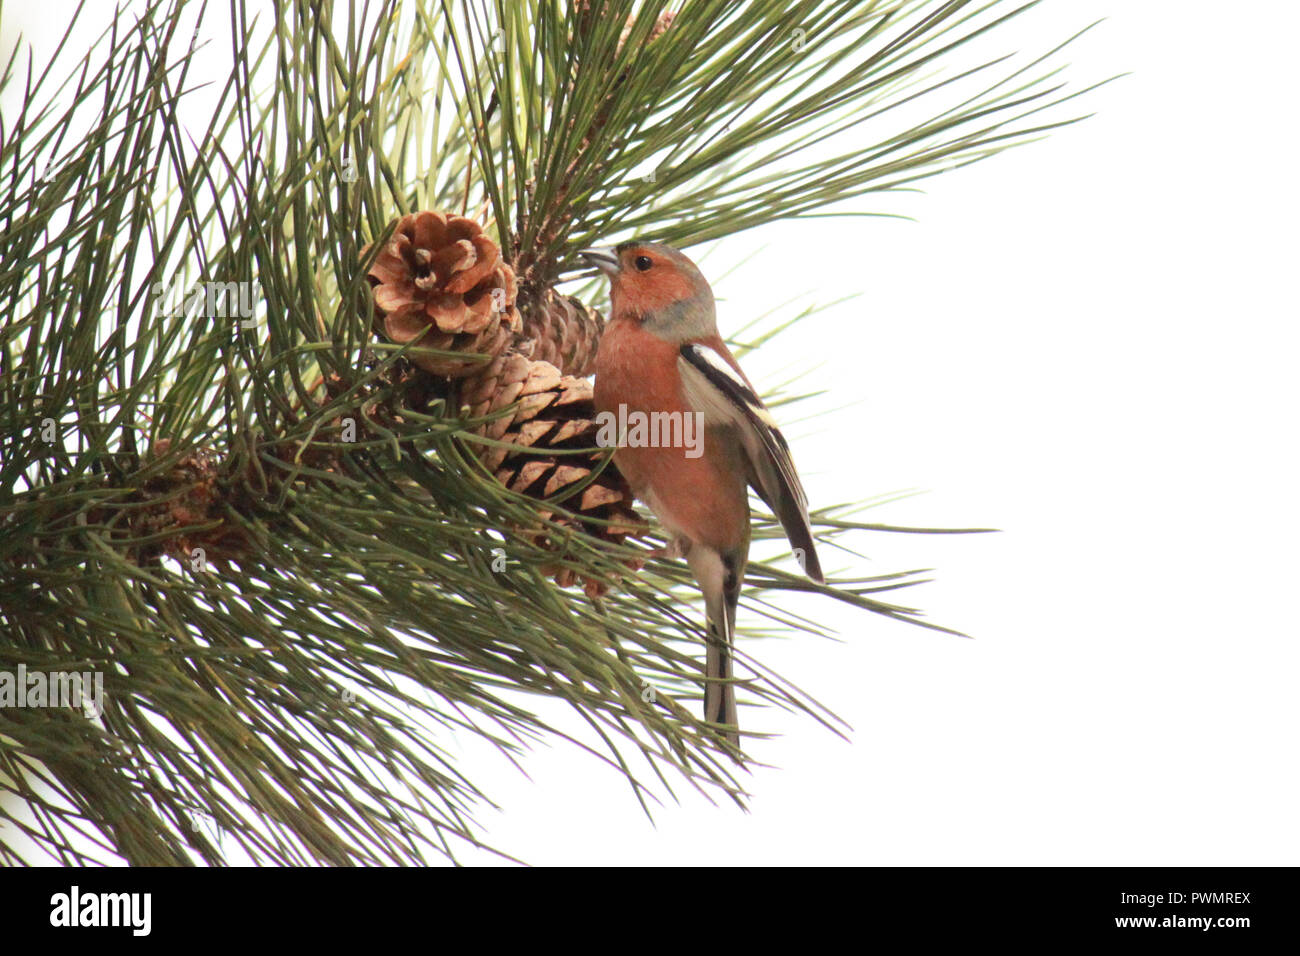 Chaffinch perched on pine cones on a pine tree. Fringilla coelebs. - Stock Image